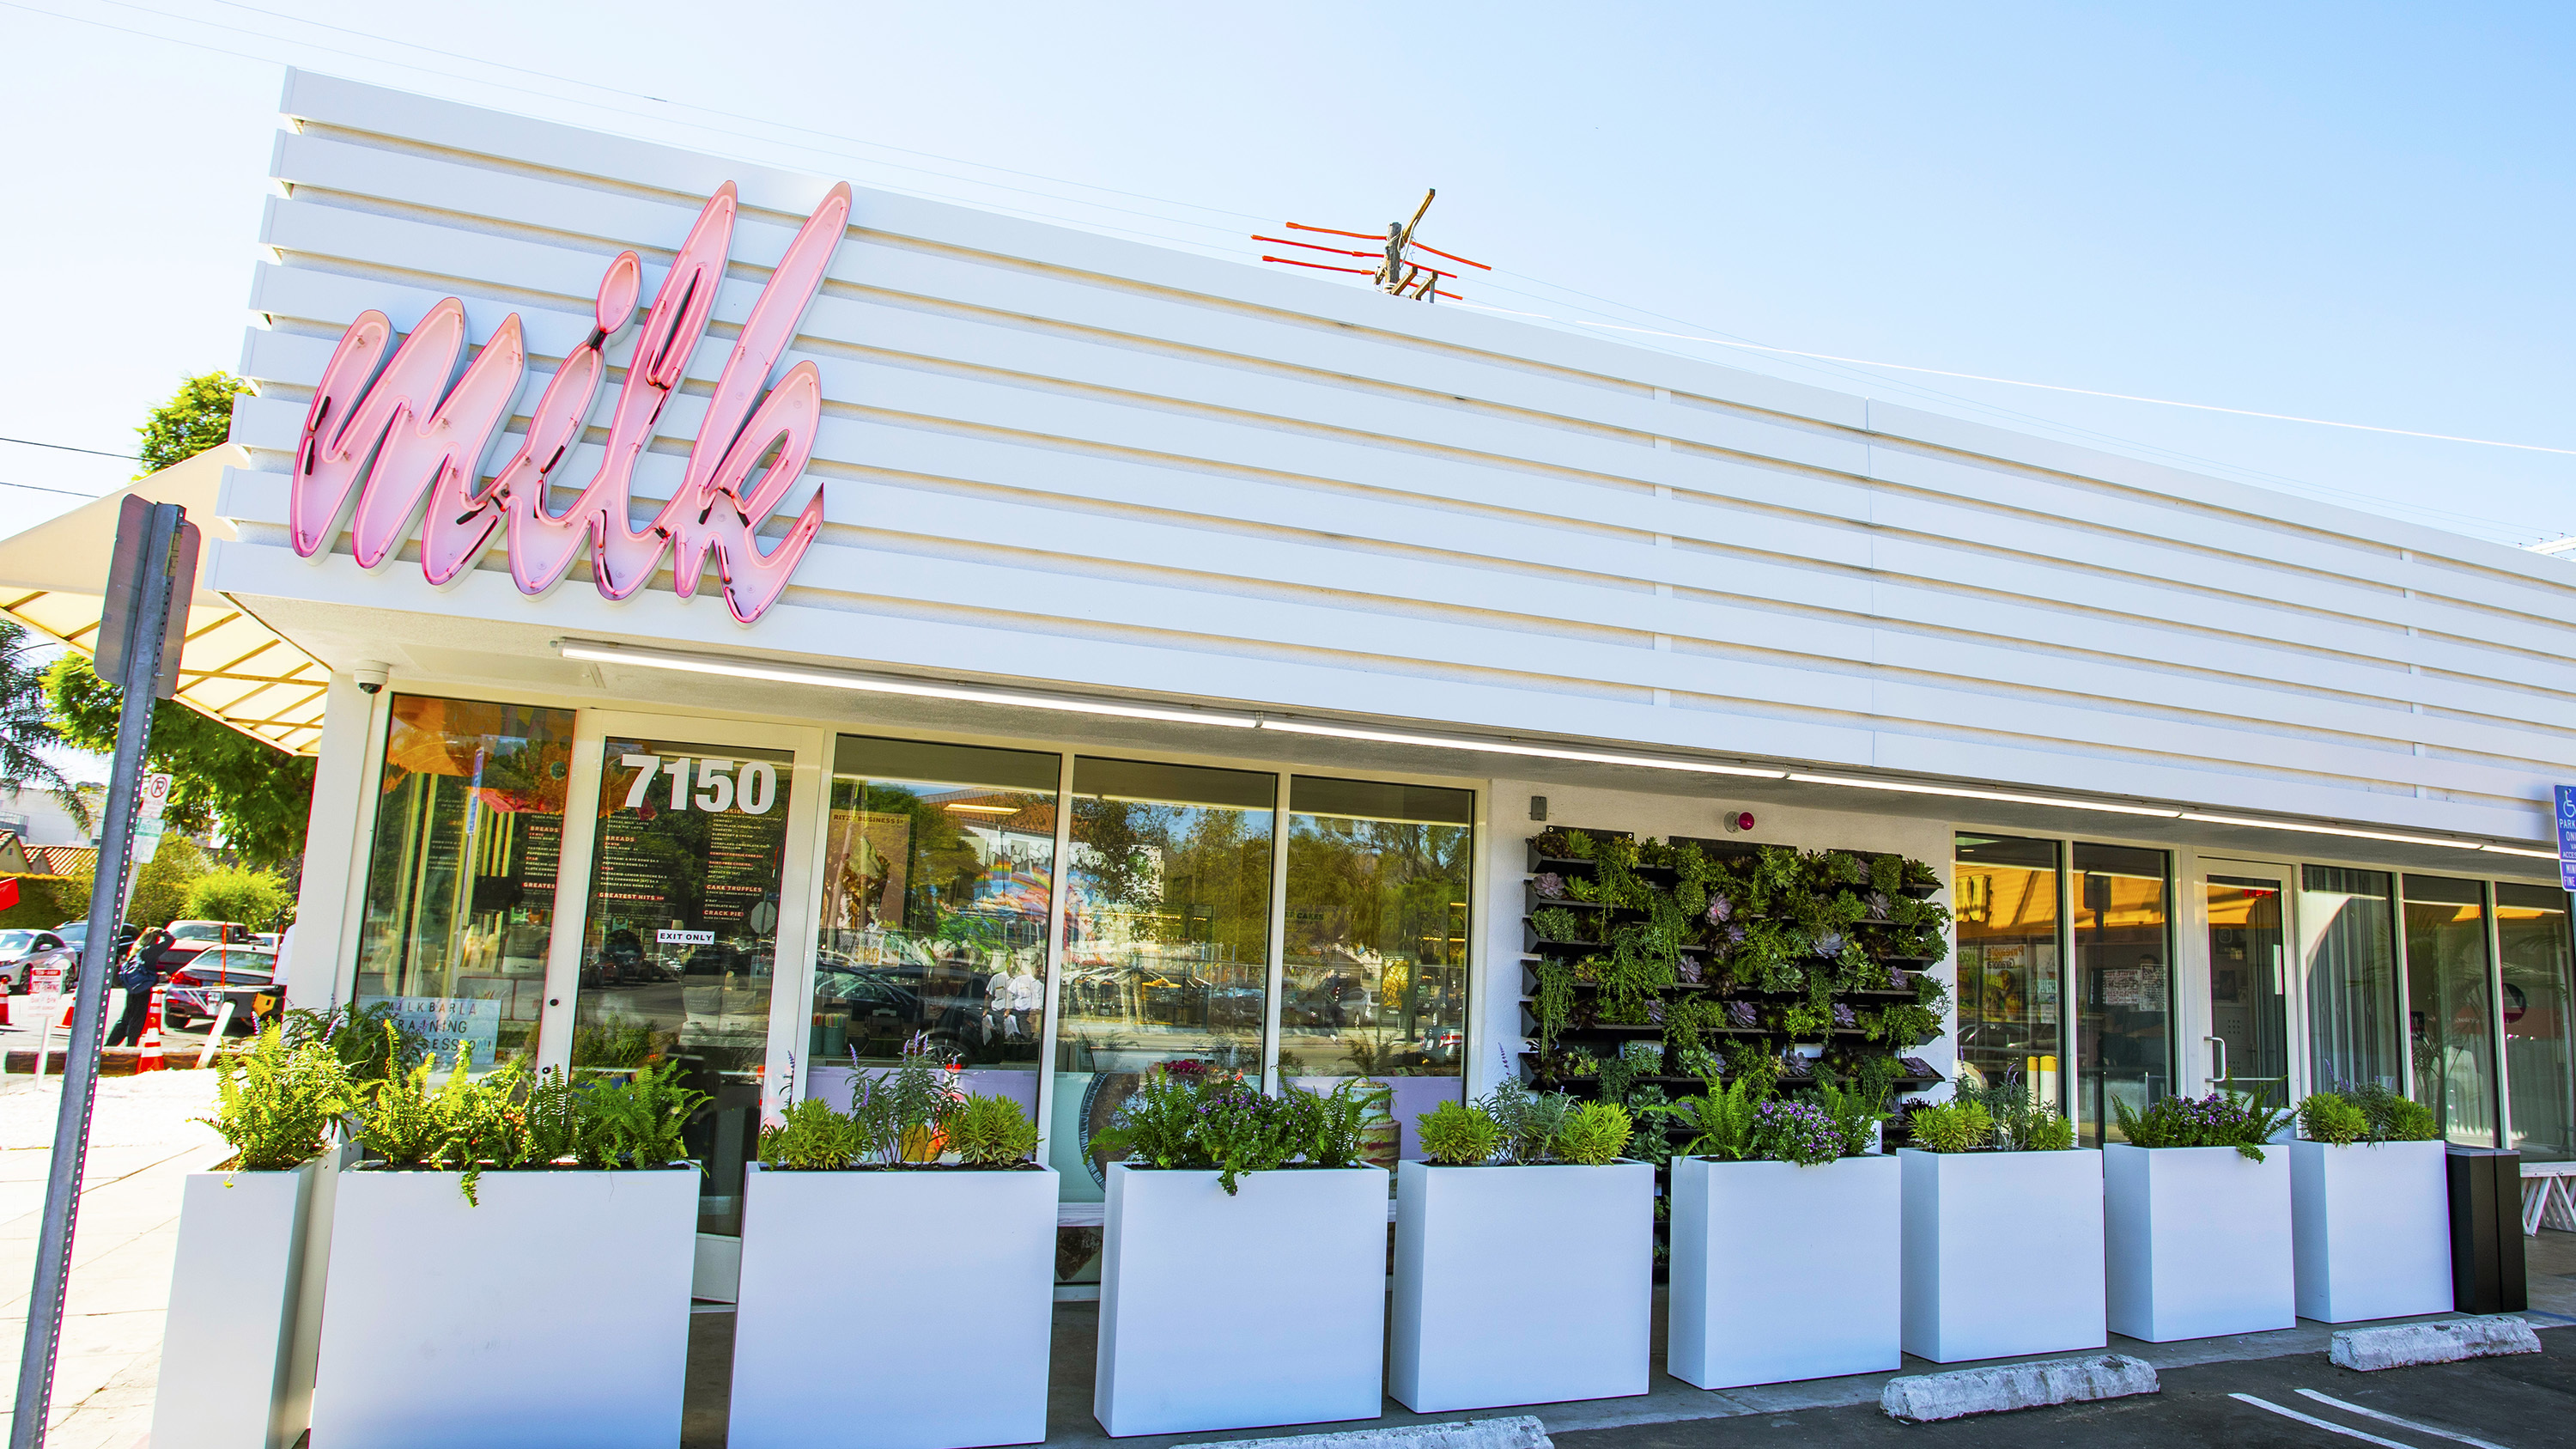 Take a peek inside L.A.'s first Milk Bar, which boasts cakes, classes and an experimental bakery